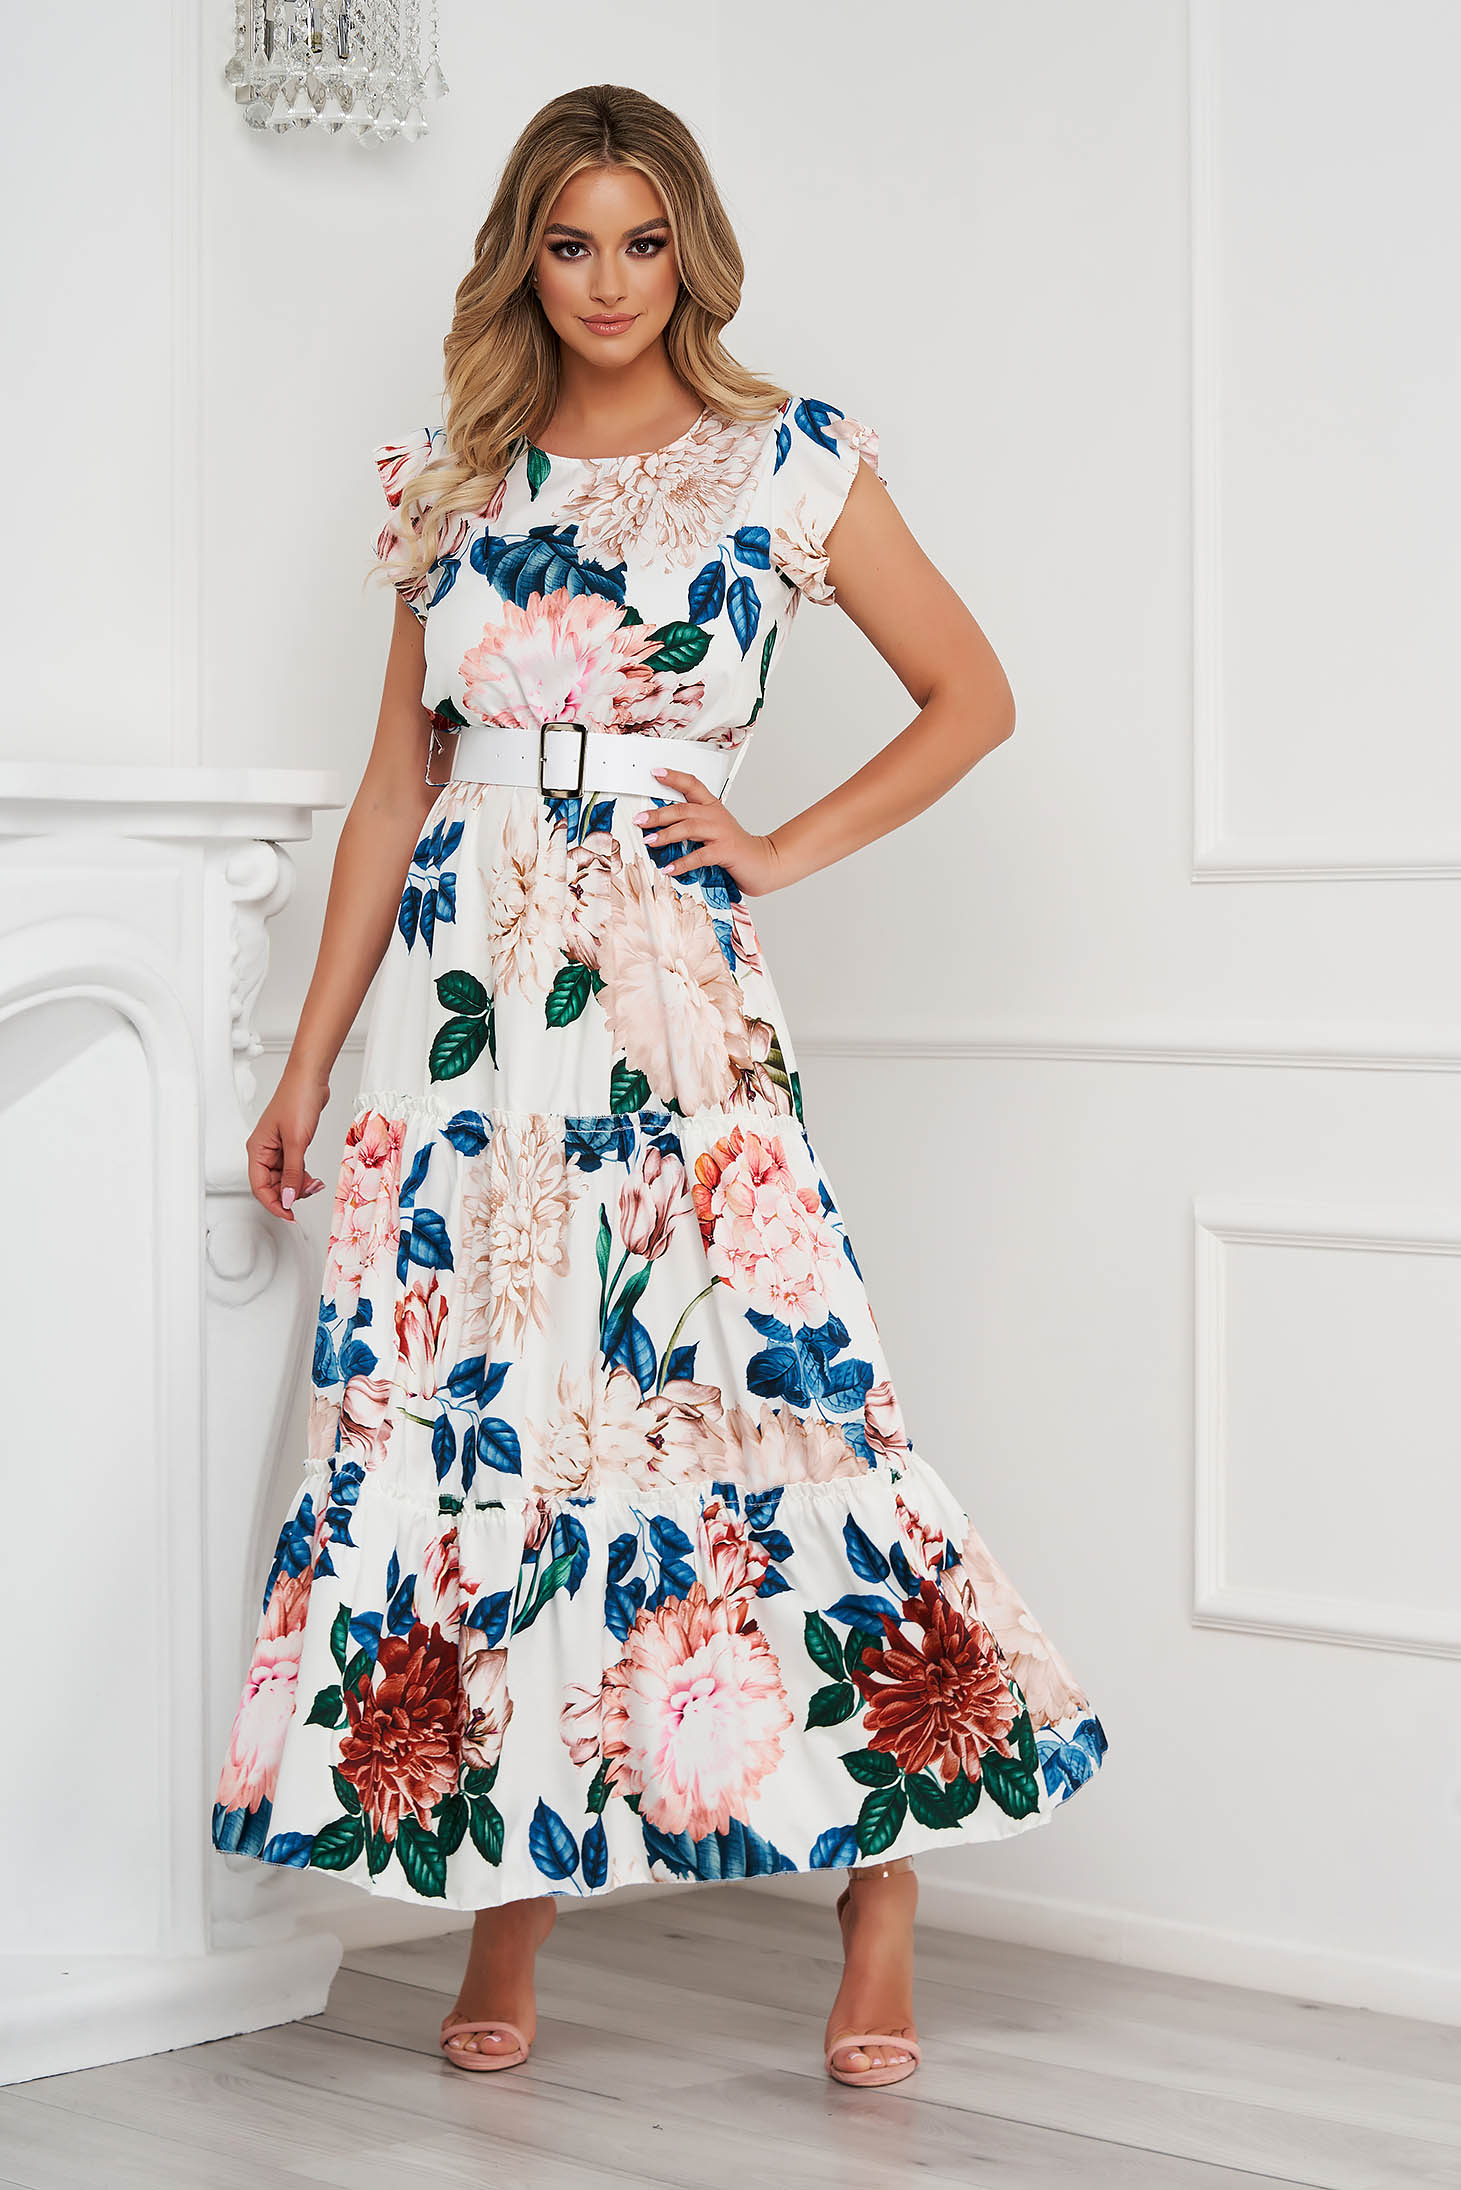 White dress with floral print cloche long with ruffle details